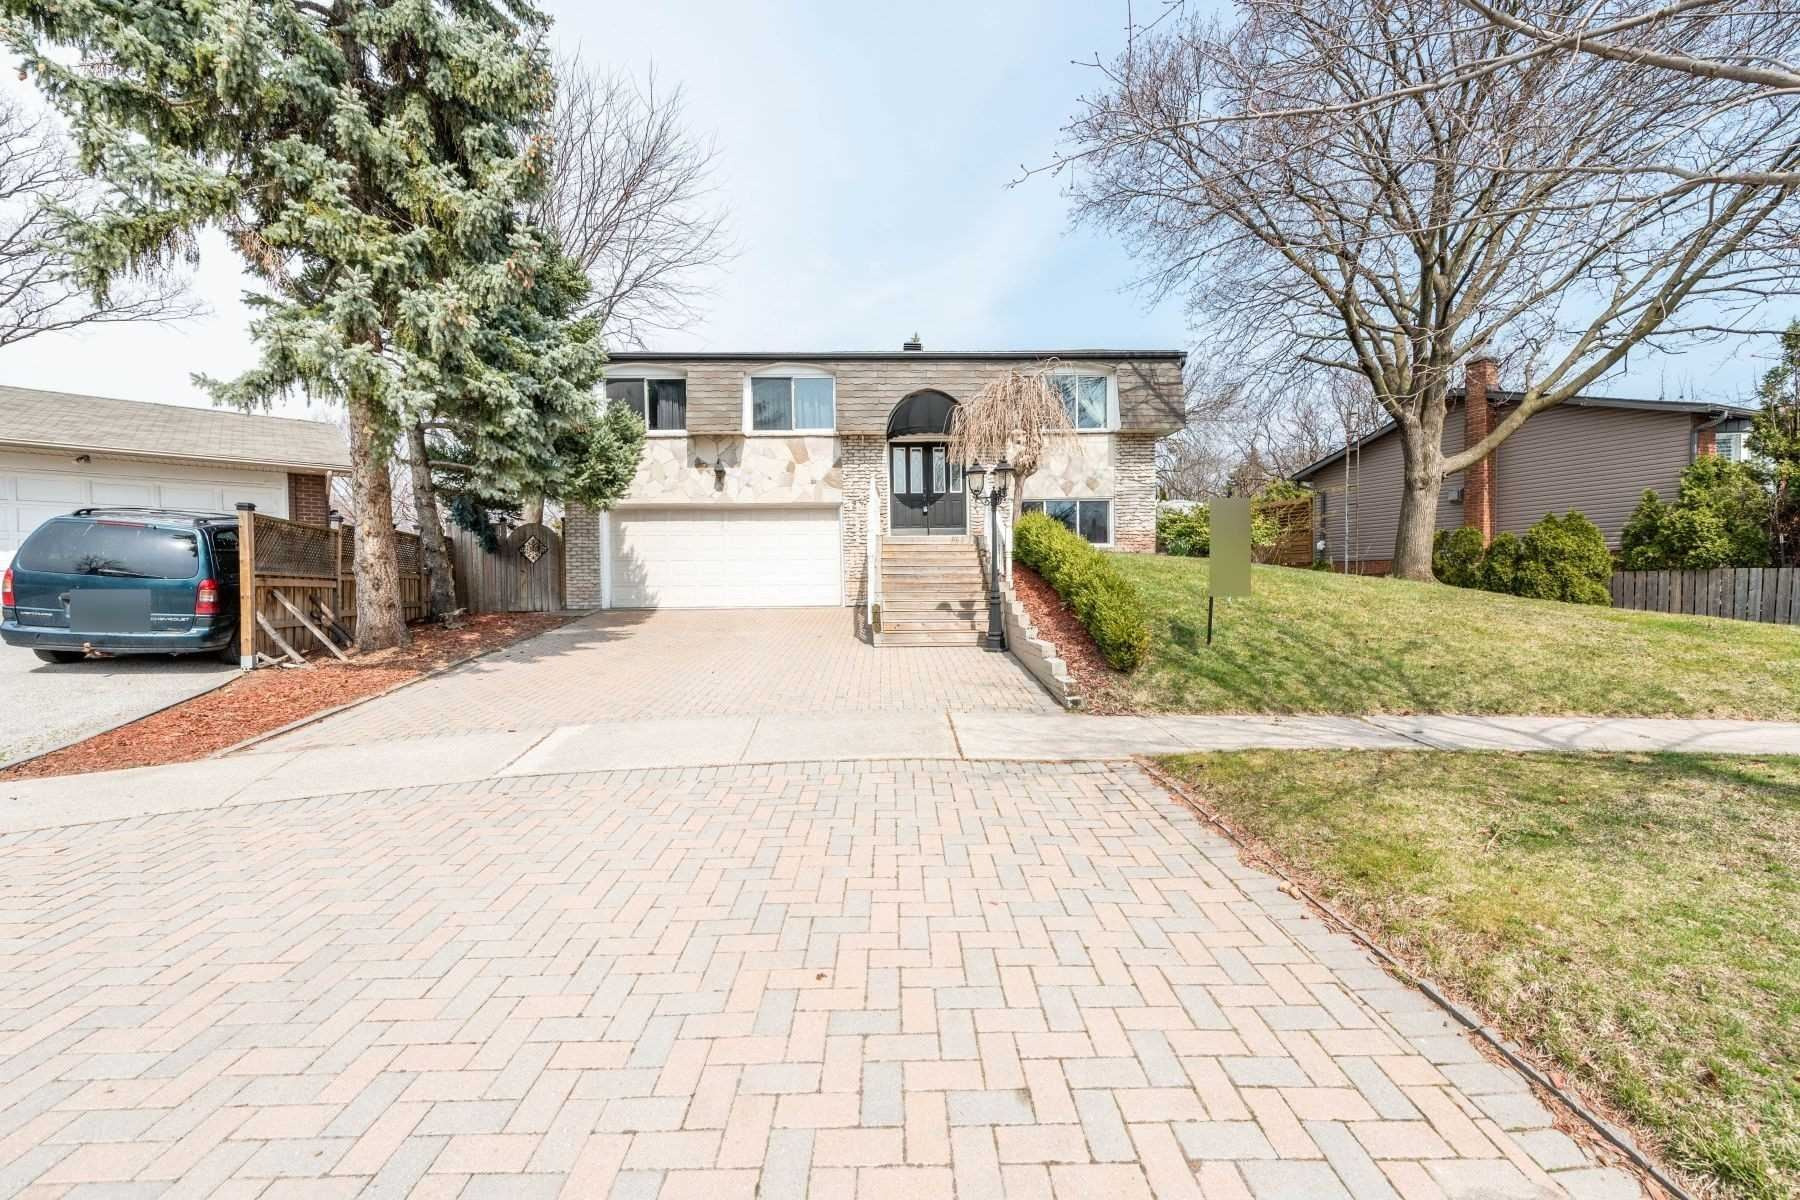 2483 Yarmouth Cres, Oakville, ON L6L 2M9 - MLS#: W5396853